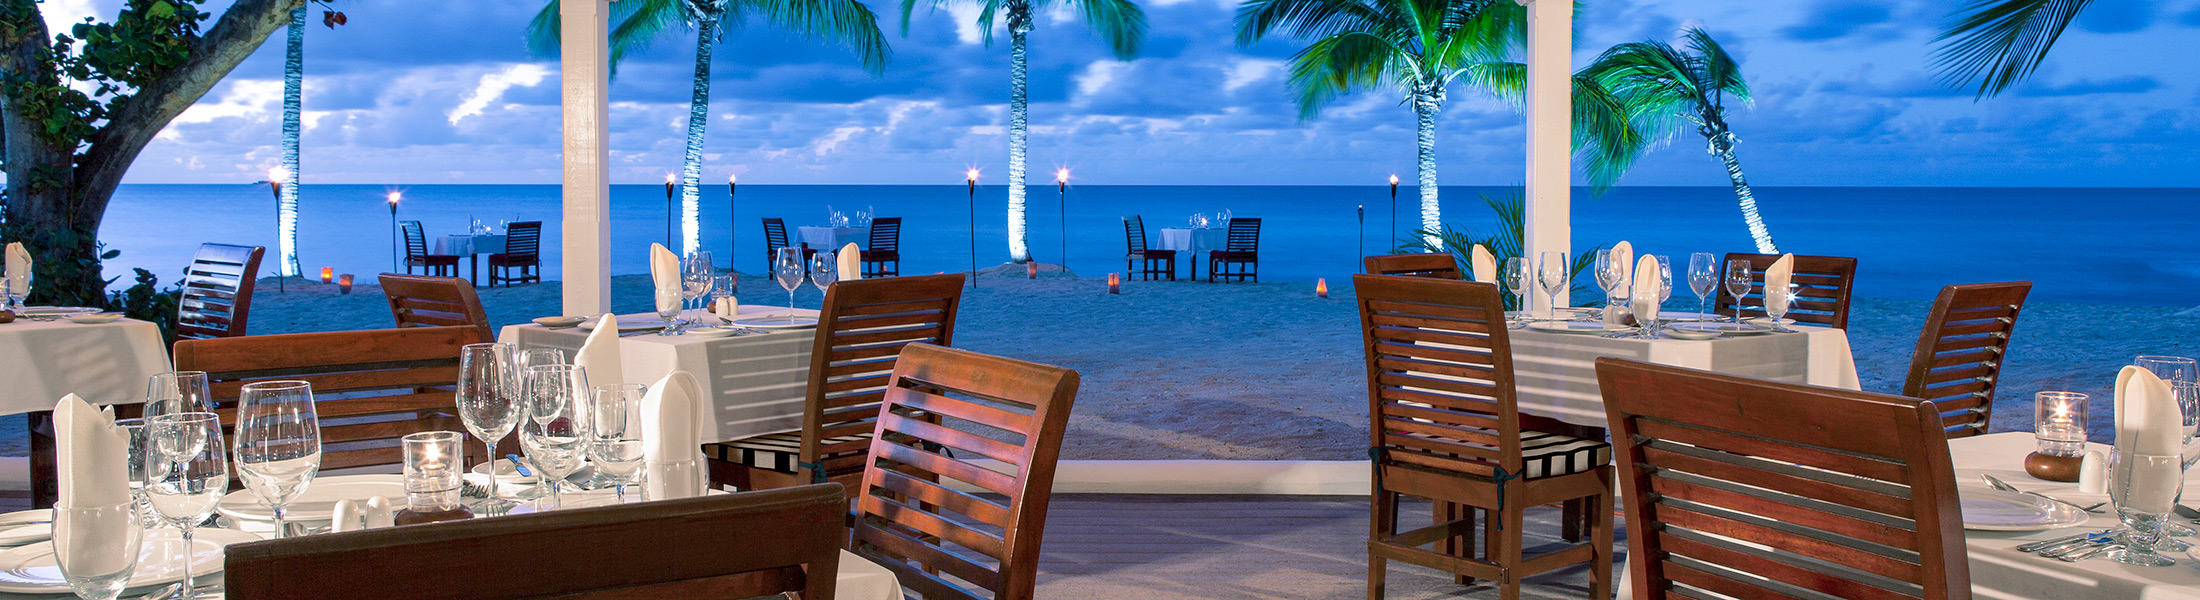 Outdoor dining at sunset at Galley Bay Resort & Spa